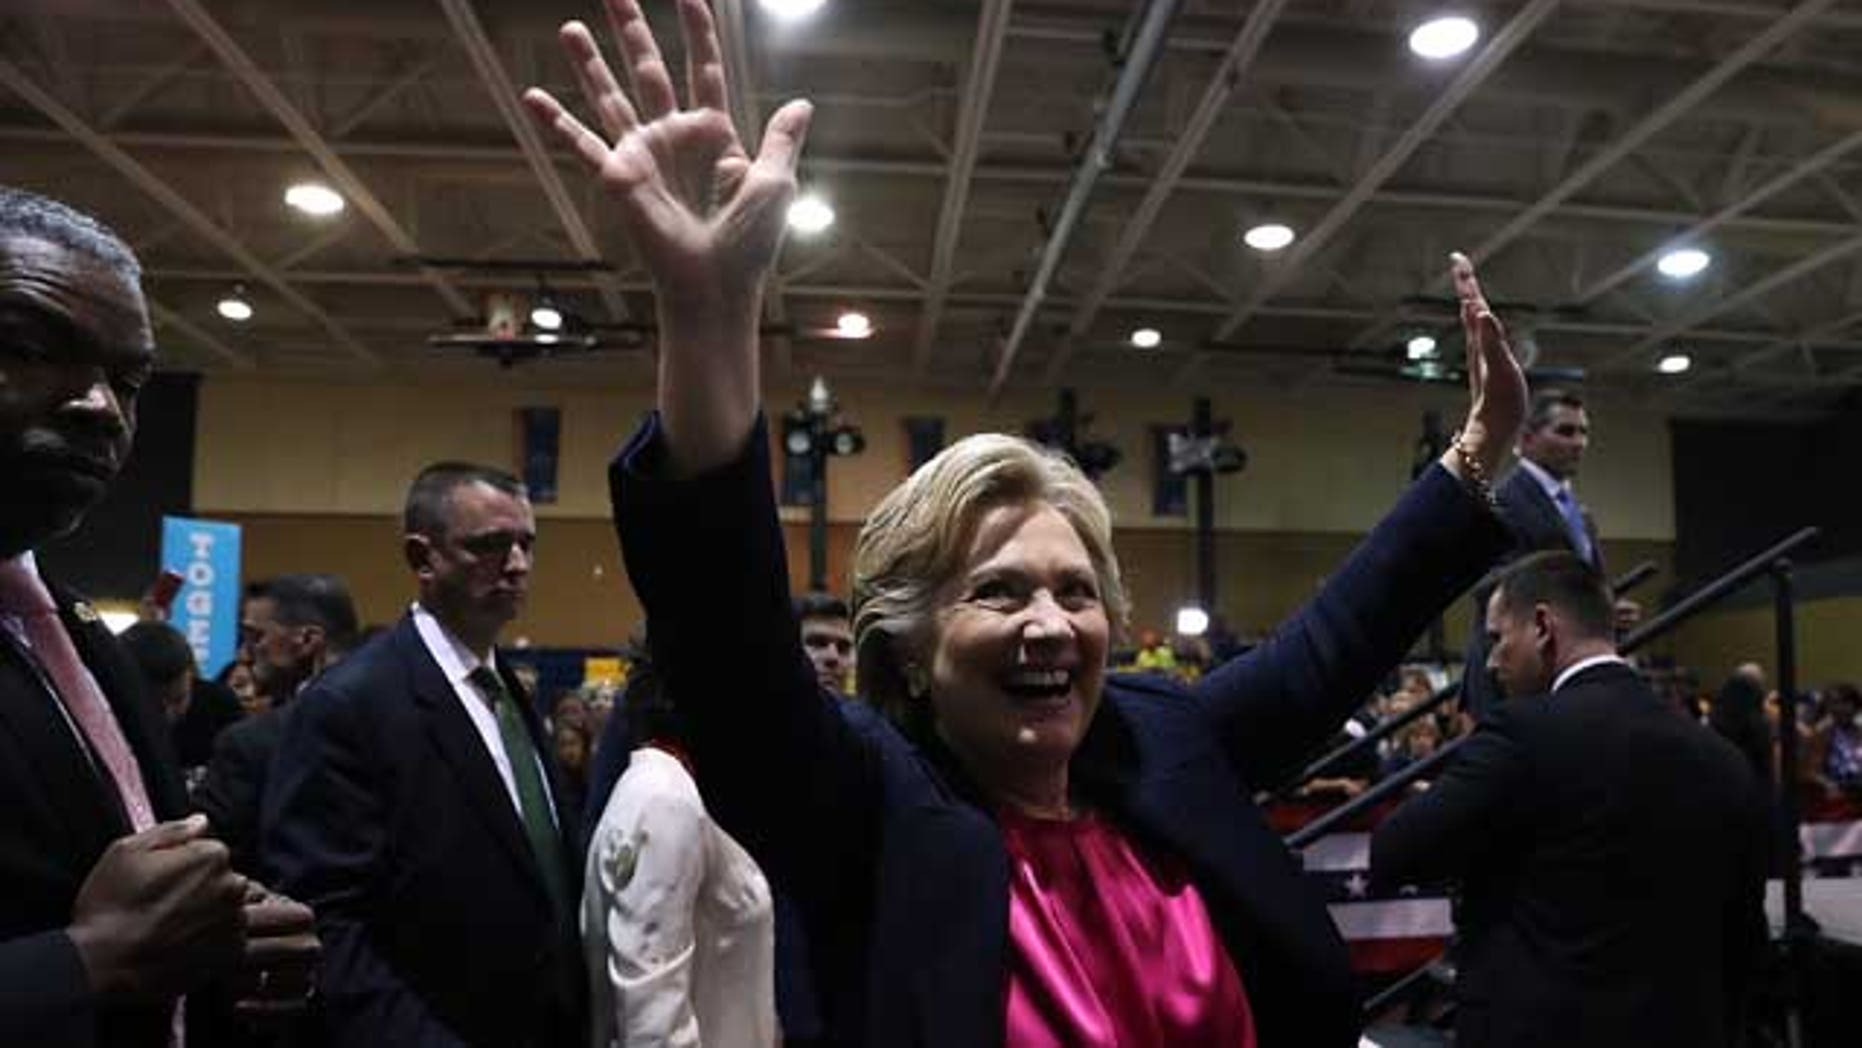 RALEIGH, NC - SEPTEMBER 27:  Democratic presidential nominee former Secretary of State Hillary Clinton greets supporters during a campaign rally at Wake Technical Community College on September 27, 2016 in Raleigh, North Carolina. Hillary Clinton is campaigning in North Carolina a day after facing off with republican presidential nominee Donald Trump in the first presidential debate.  (Photo by Justin Sullivan/Getty Images)